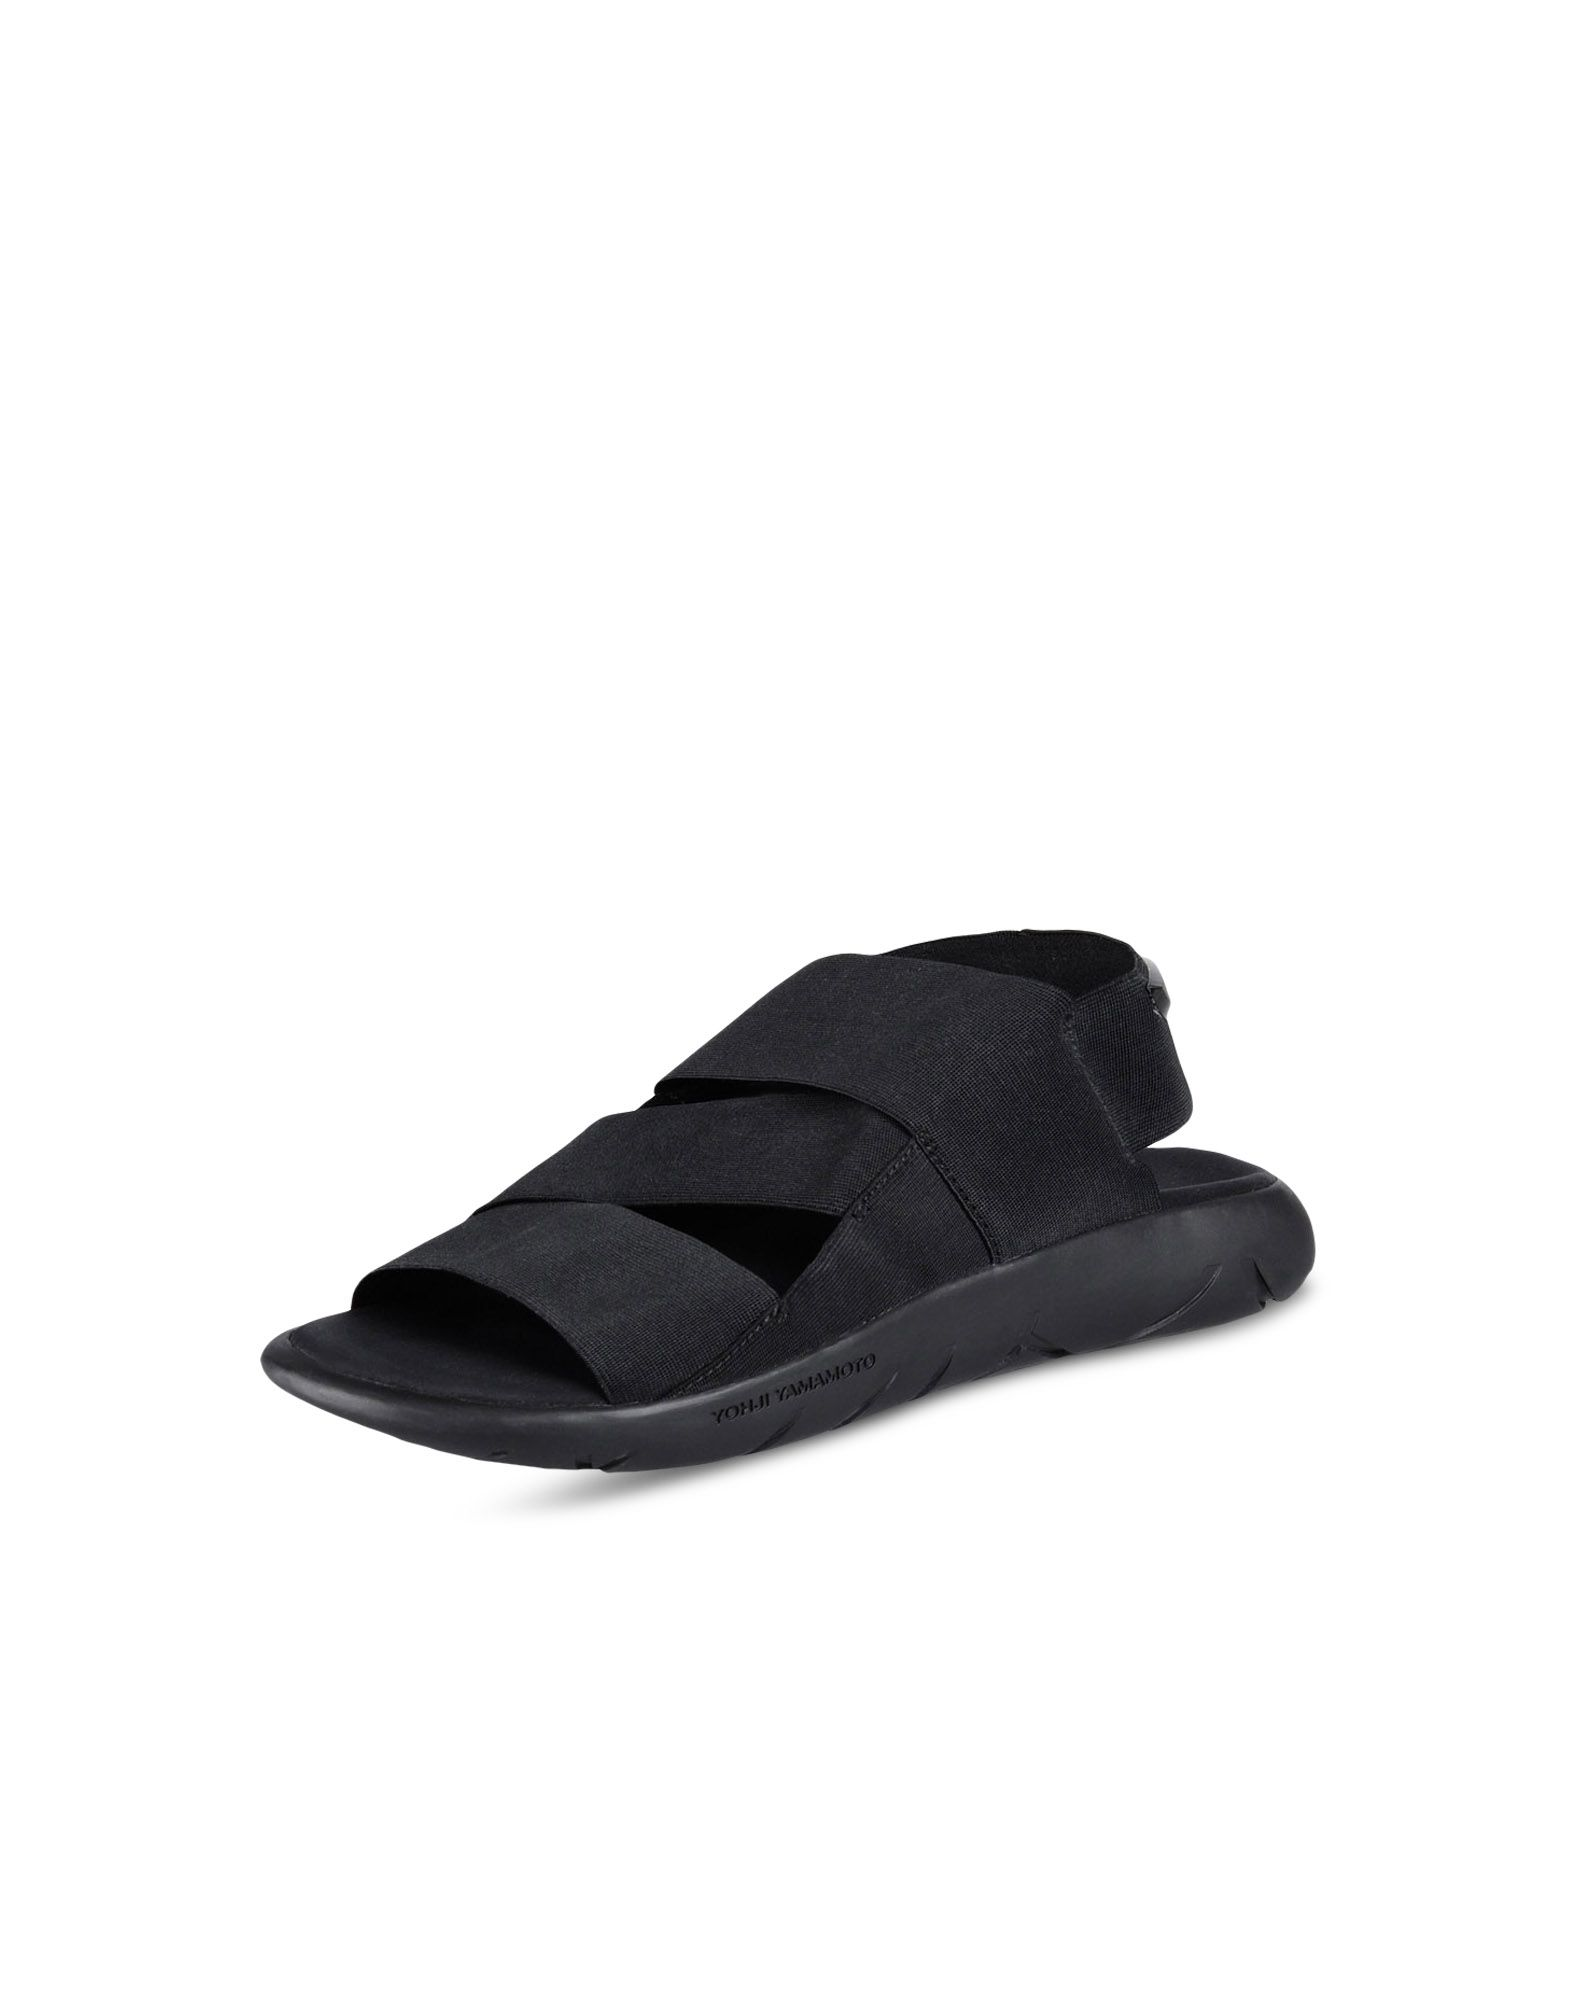 12be74bed5093 ... Y-3 Y-3 QASA SANDAL Sandals Man ...